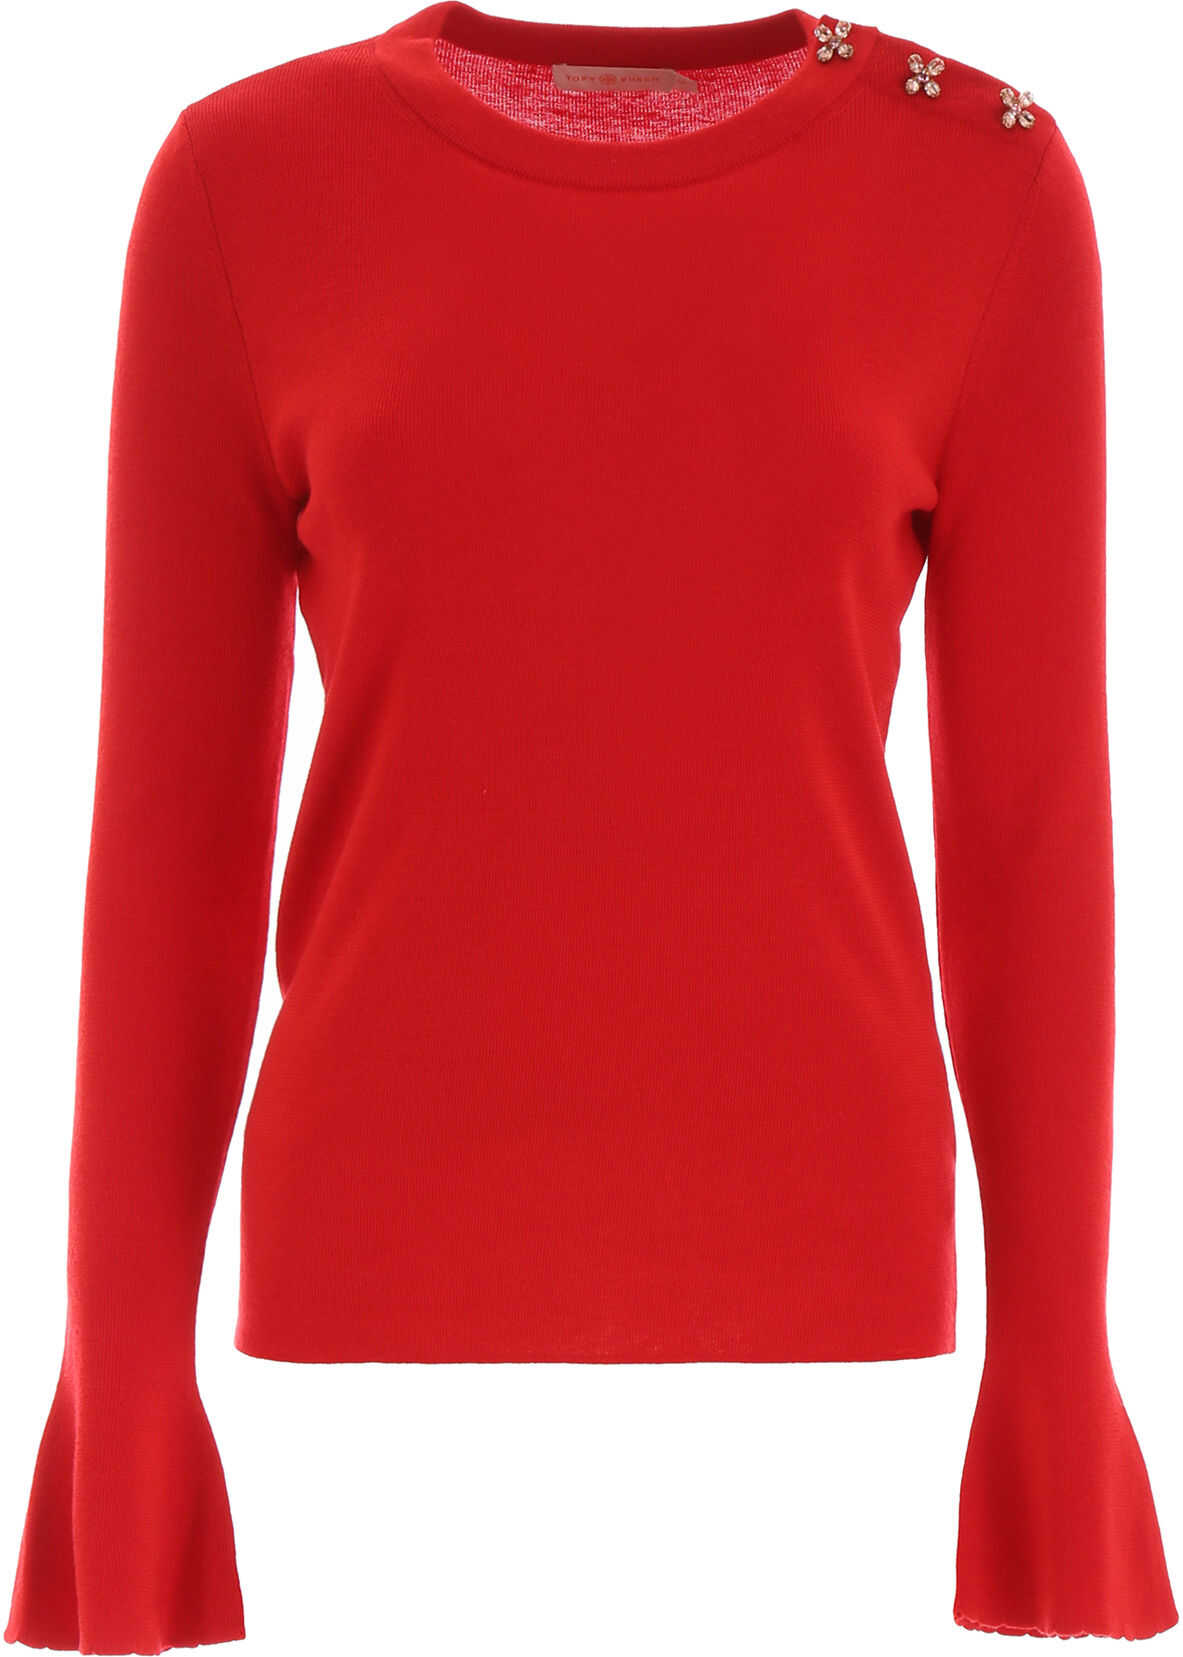 Tory Burch Crystal Button Pullover RED VOLCANO